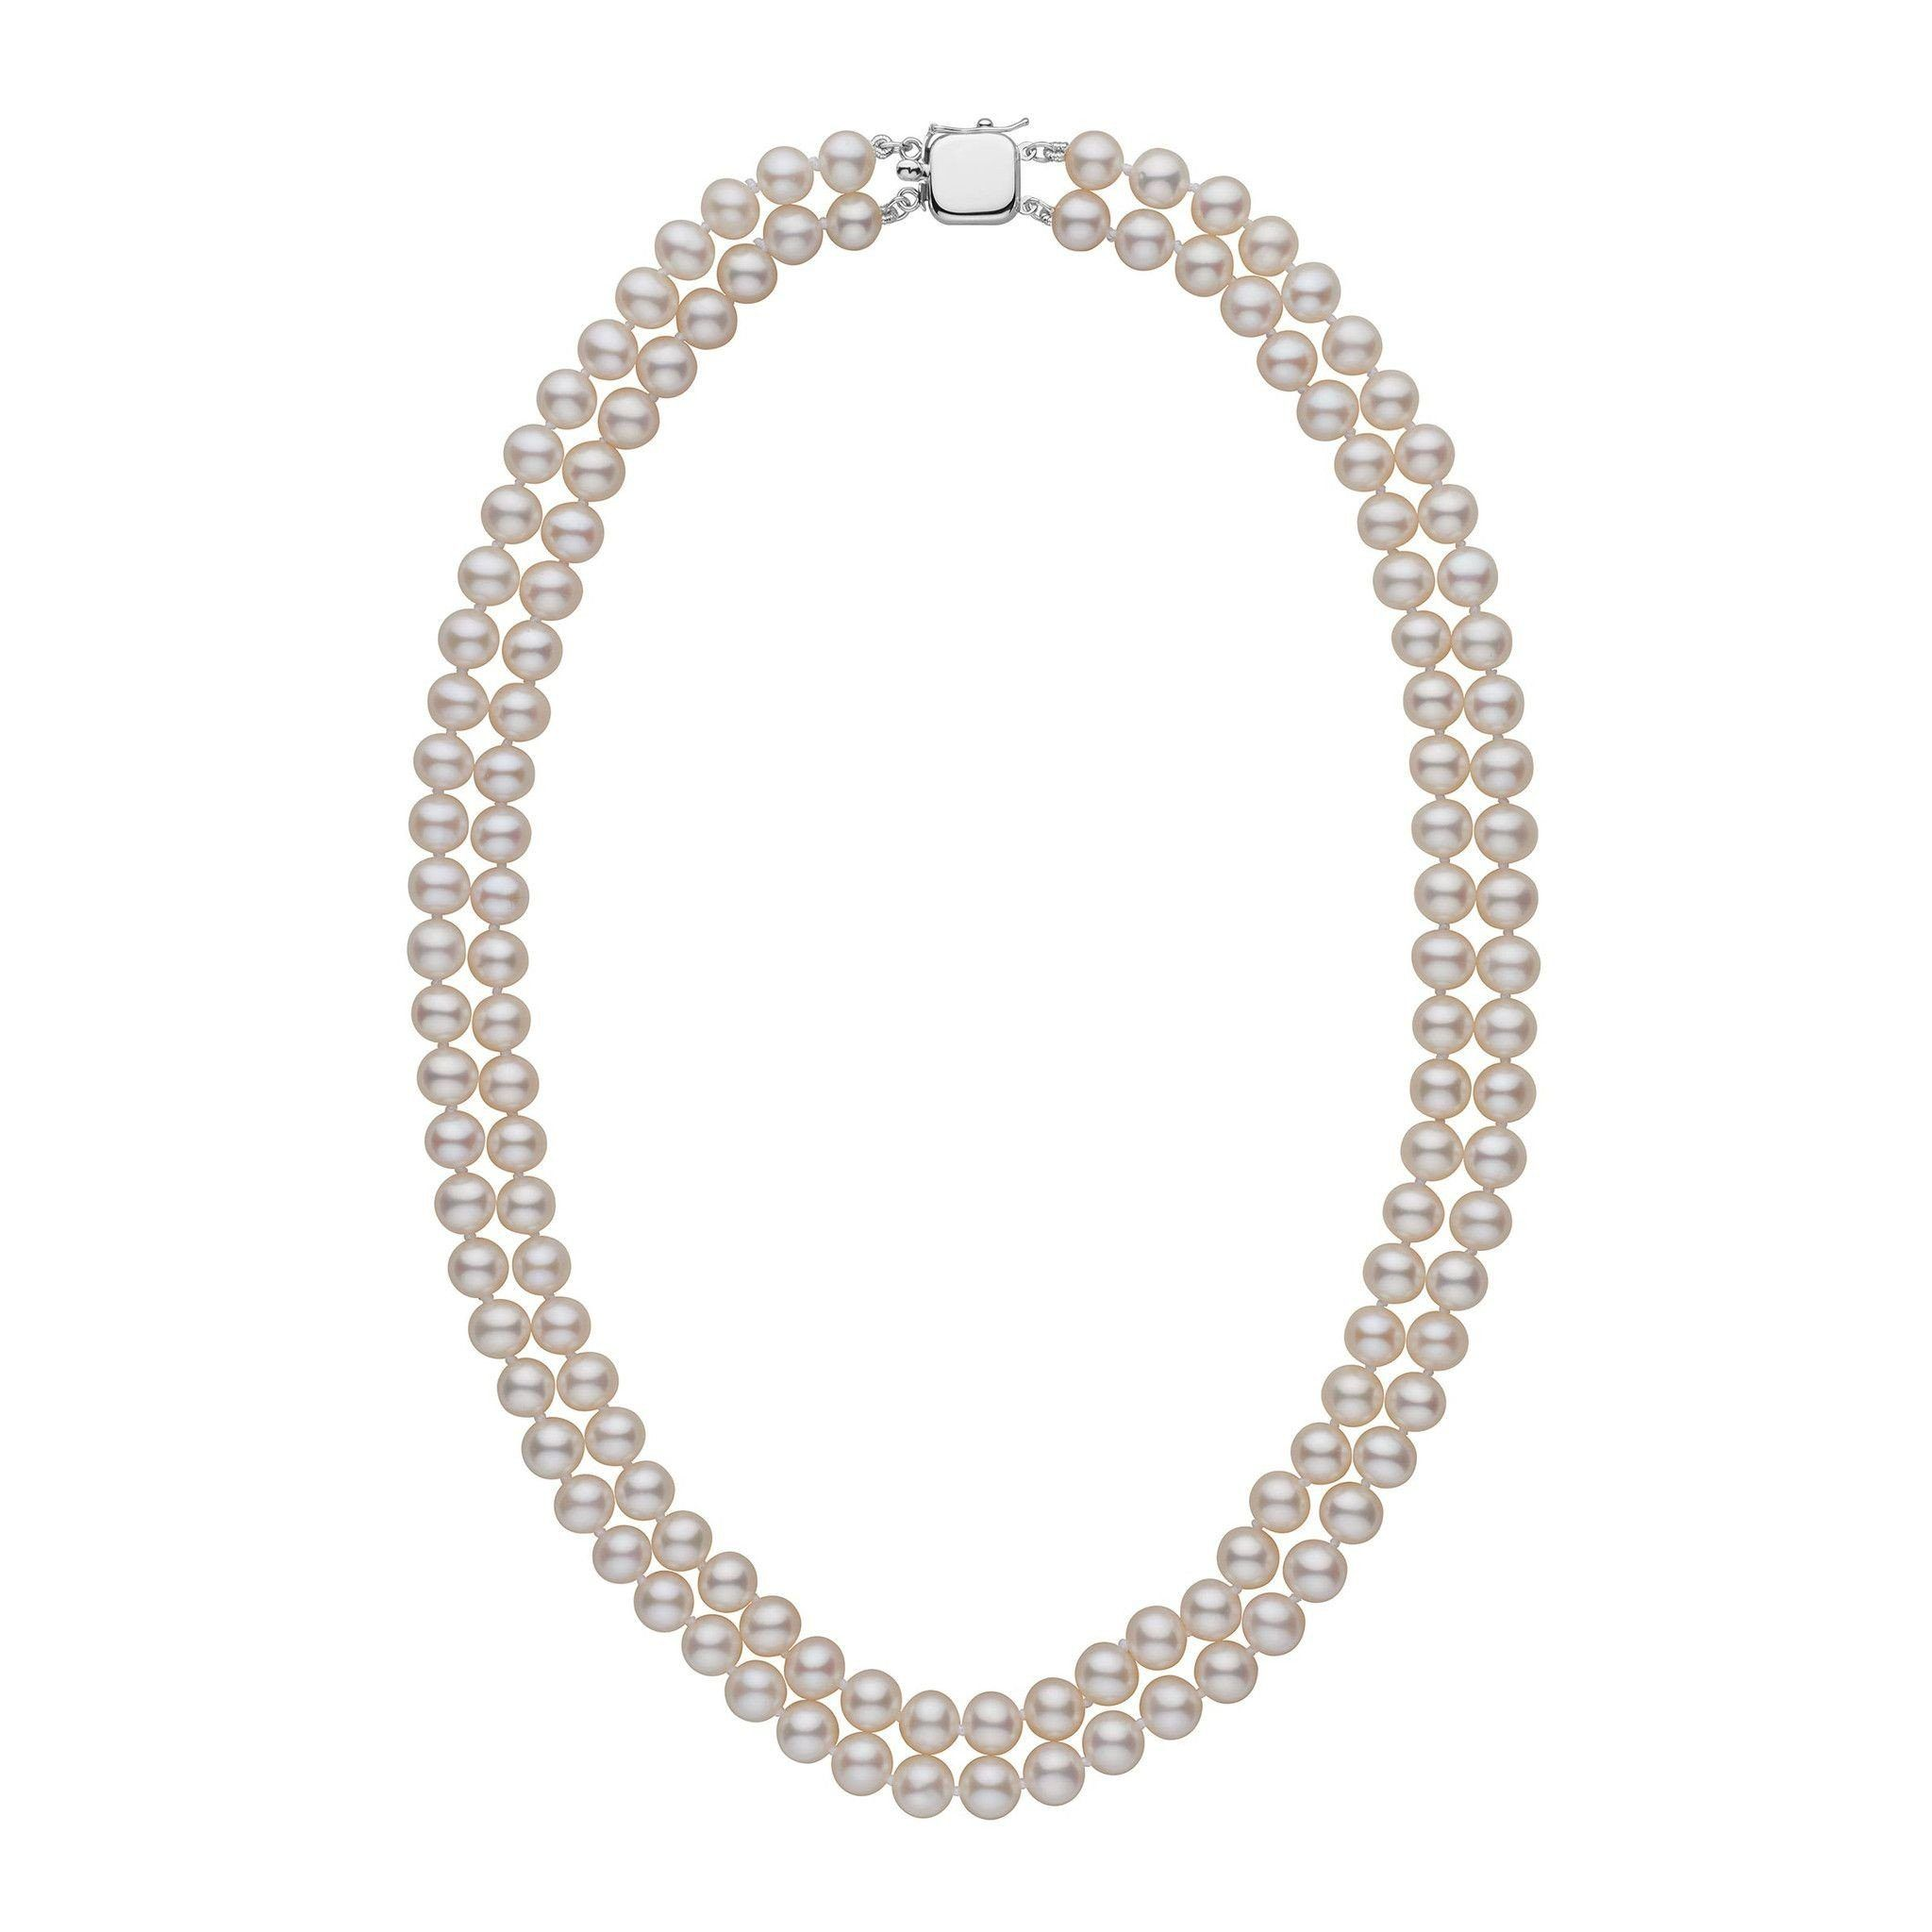 6.5-7.0 mm Double Strand AAA White Freshwater Pearl Necklace